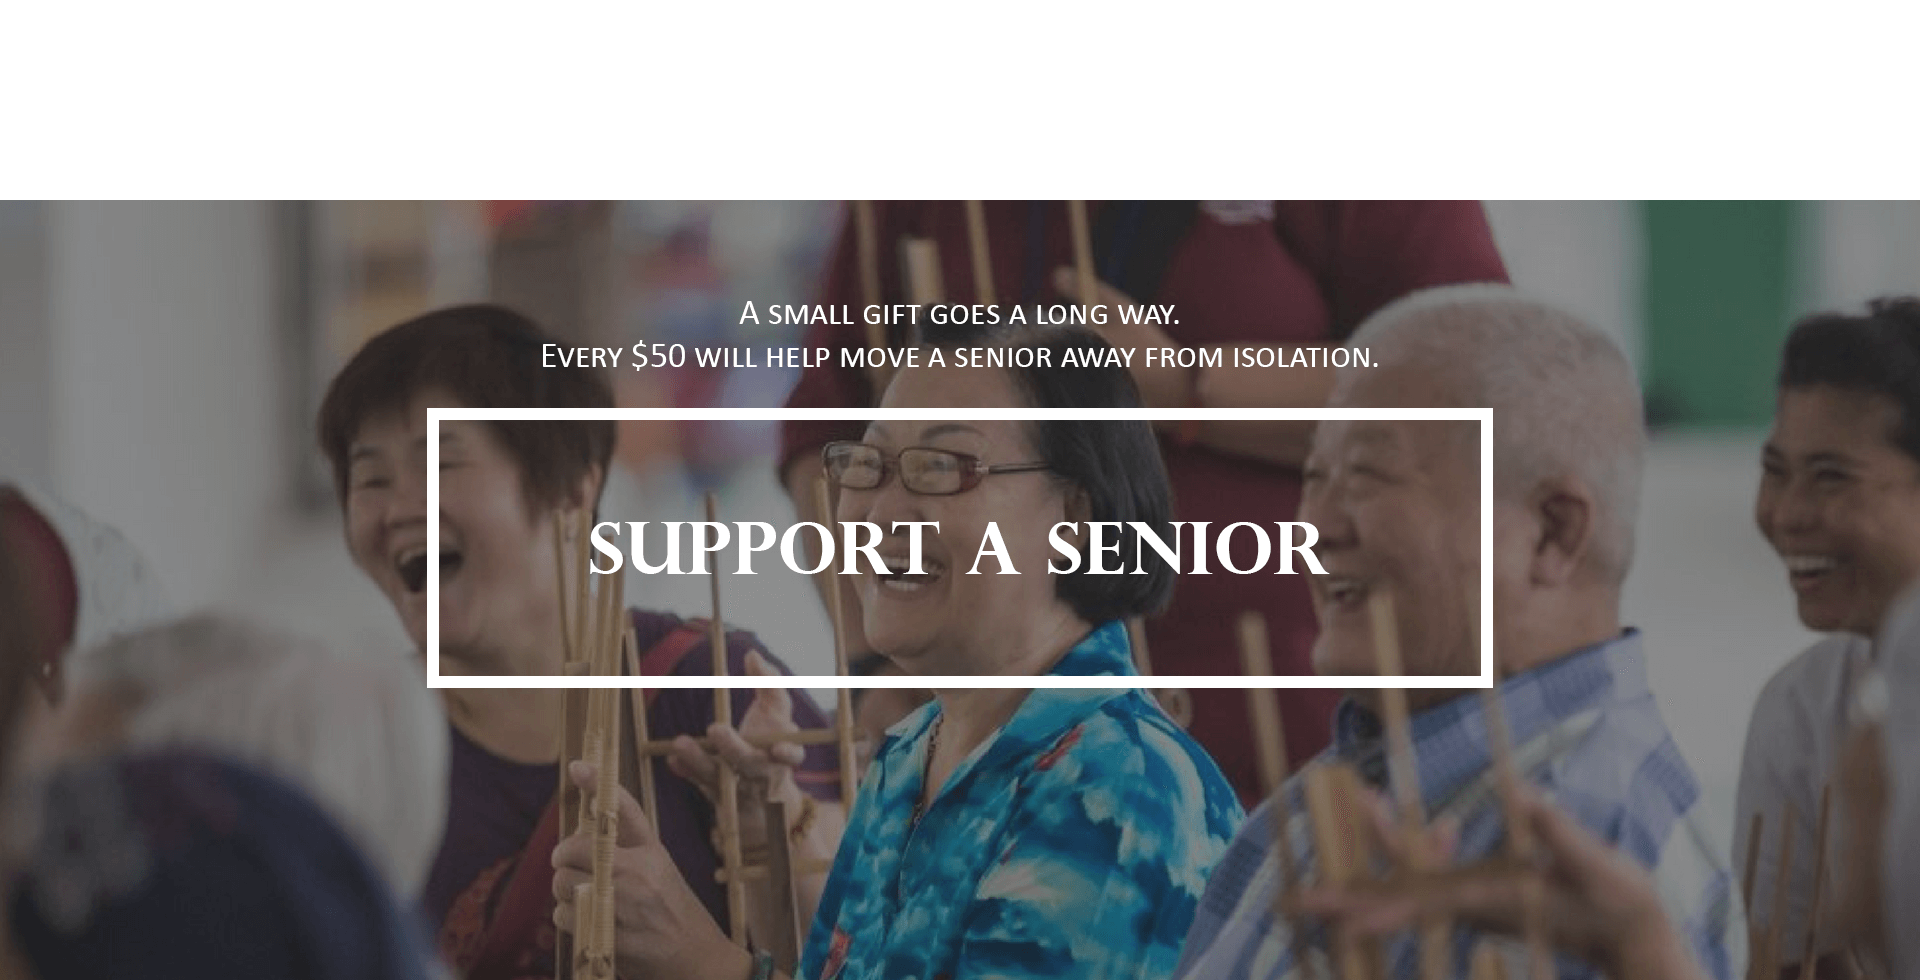 Support a Senior